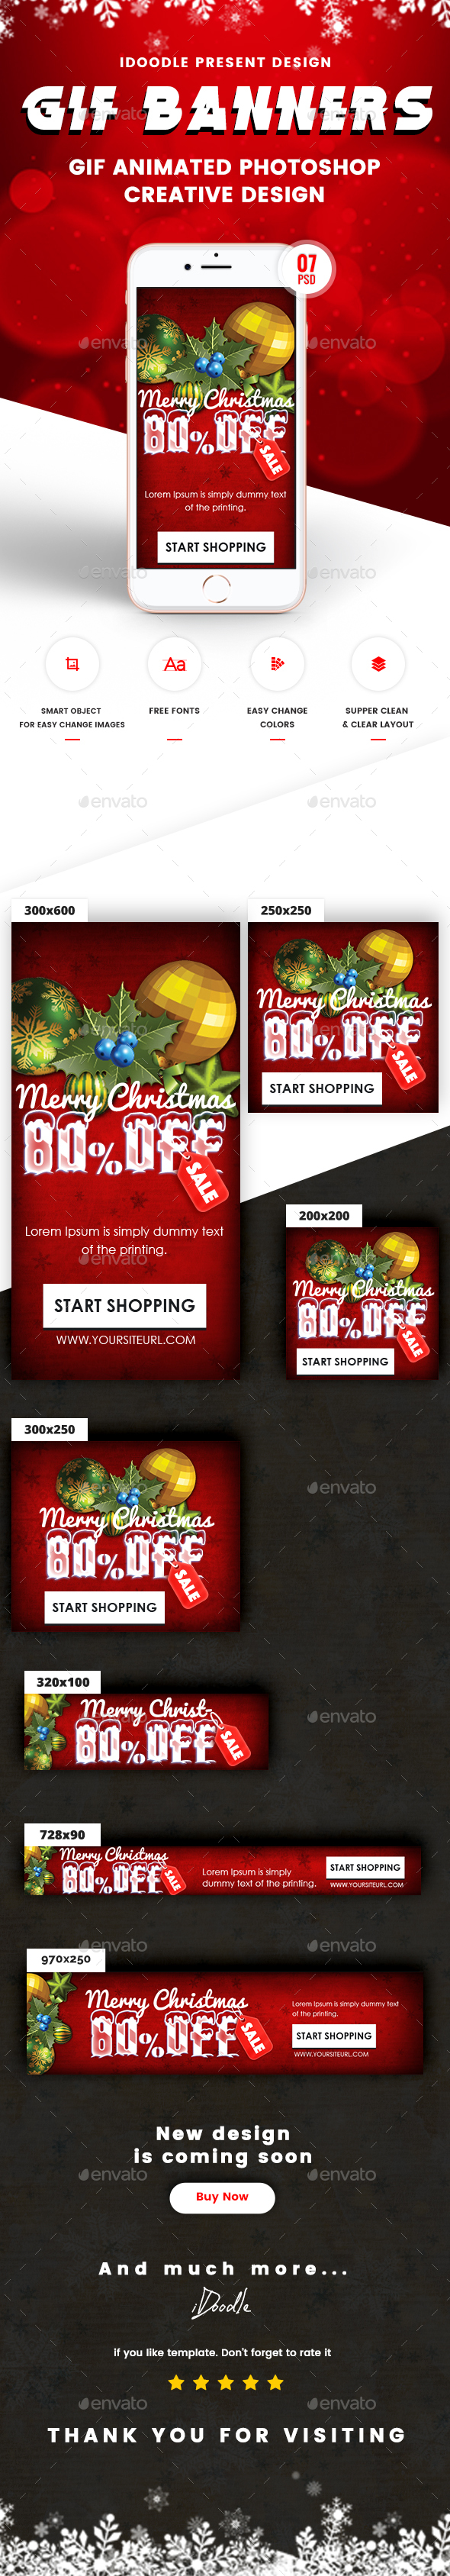 GraphicRiver Animated GIF Christmas Banners Ad 21127470